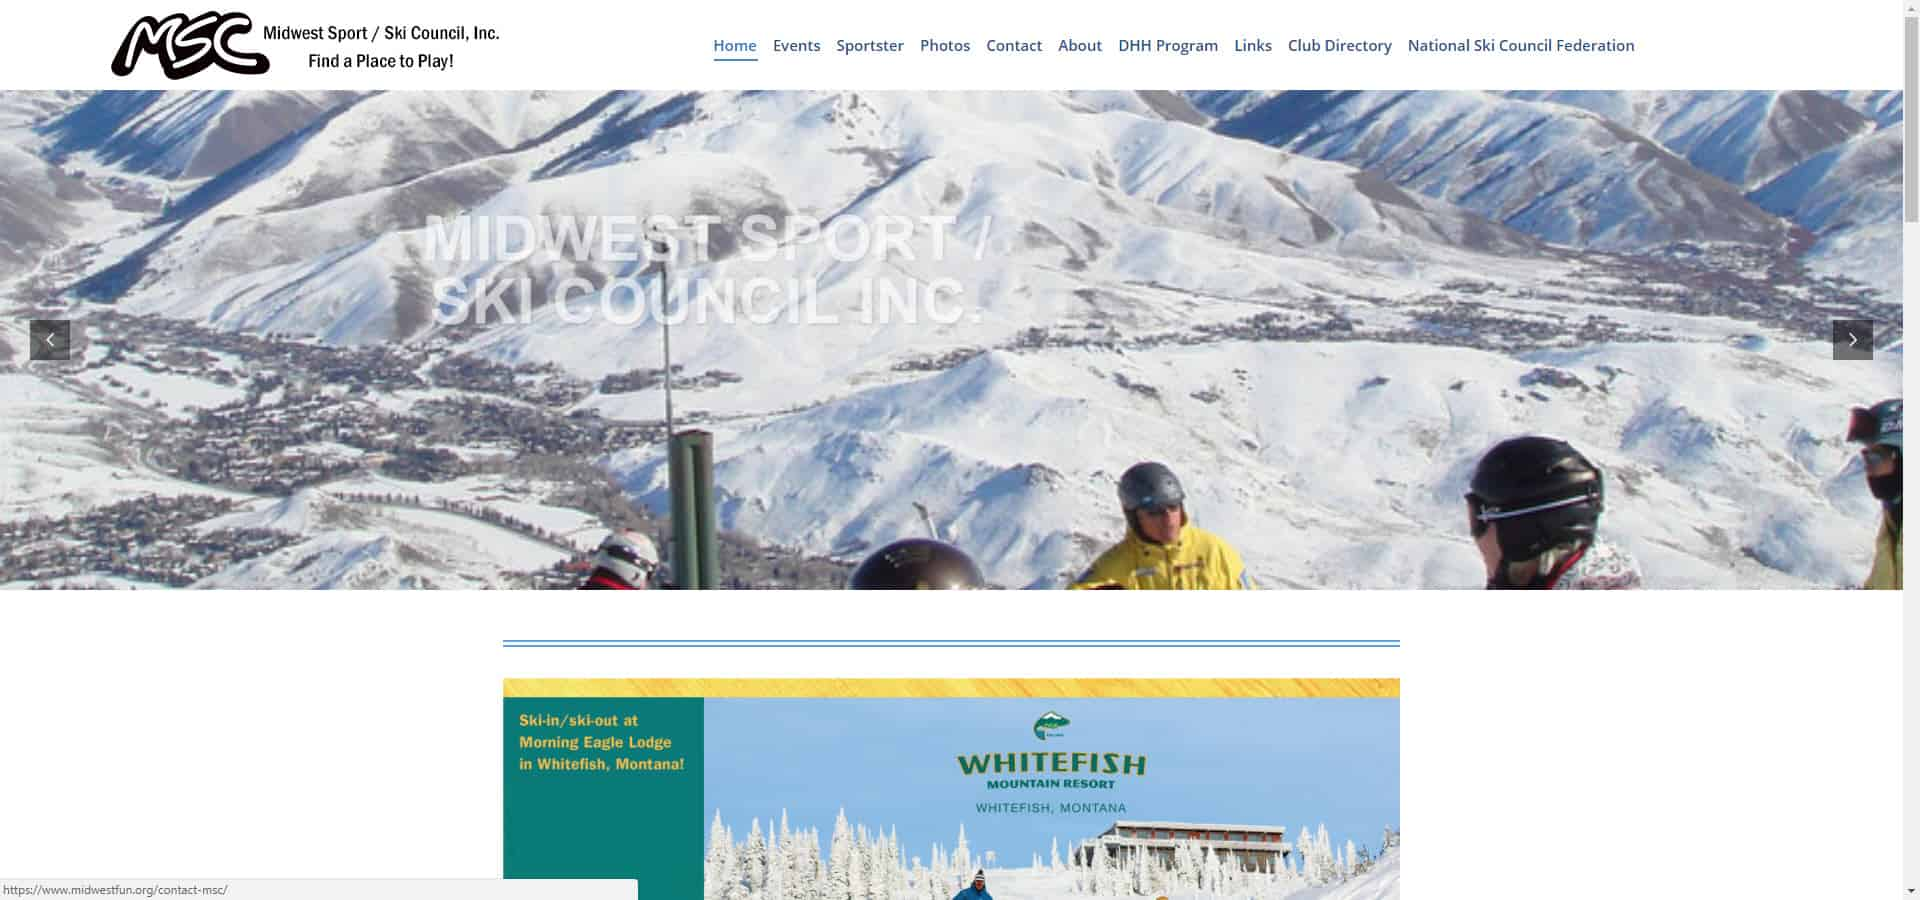 The Midwest Sport & Ski Council